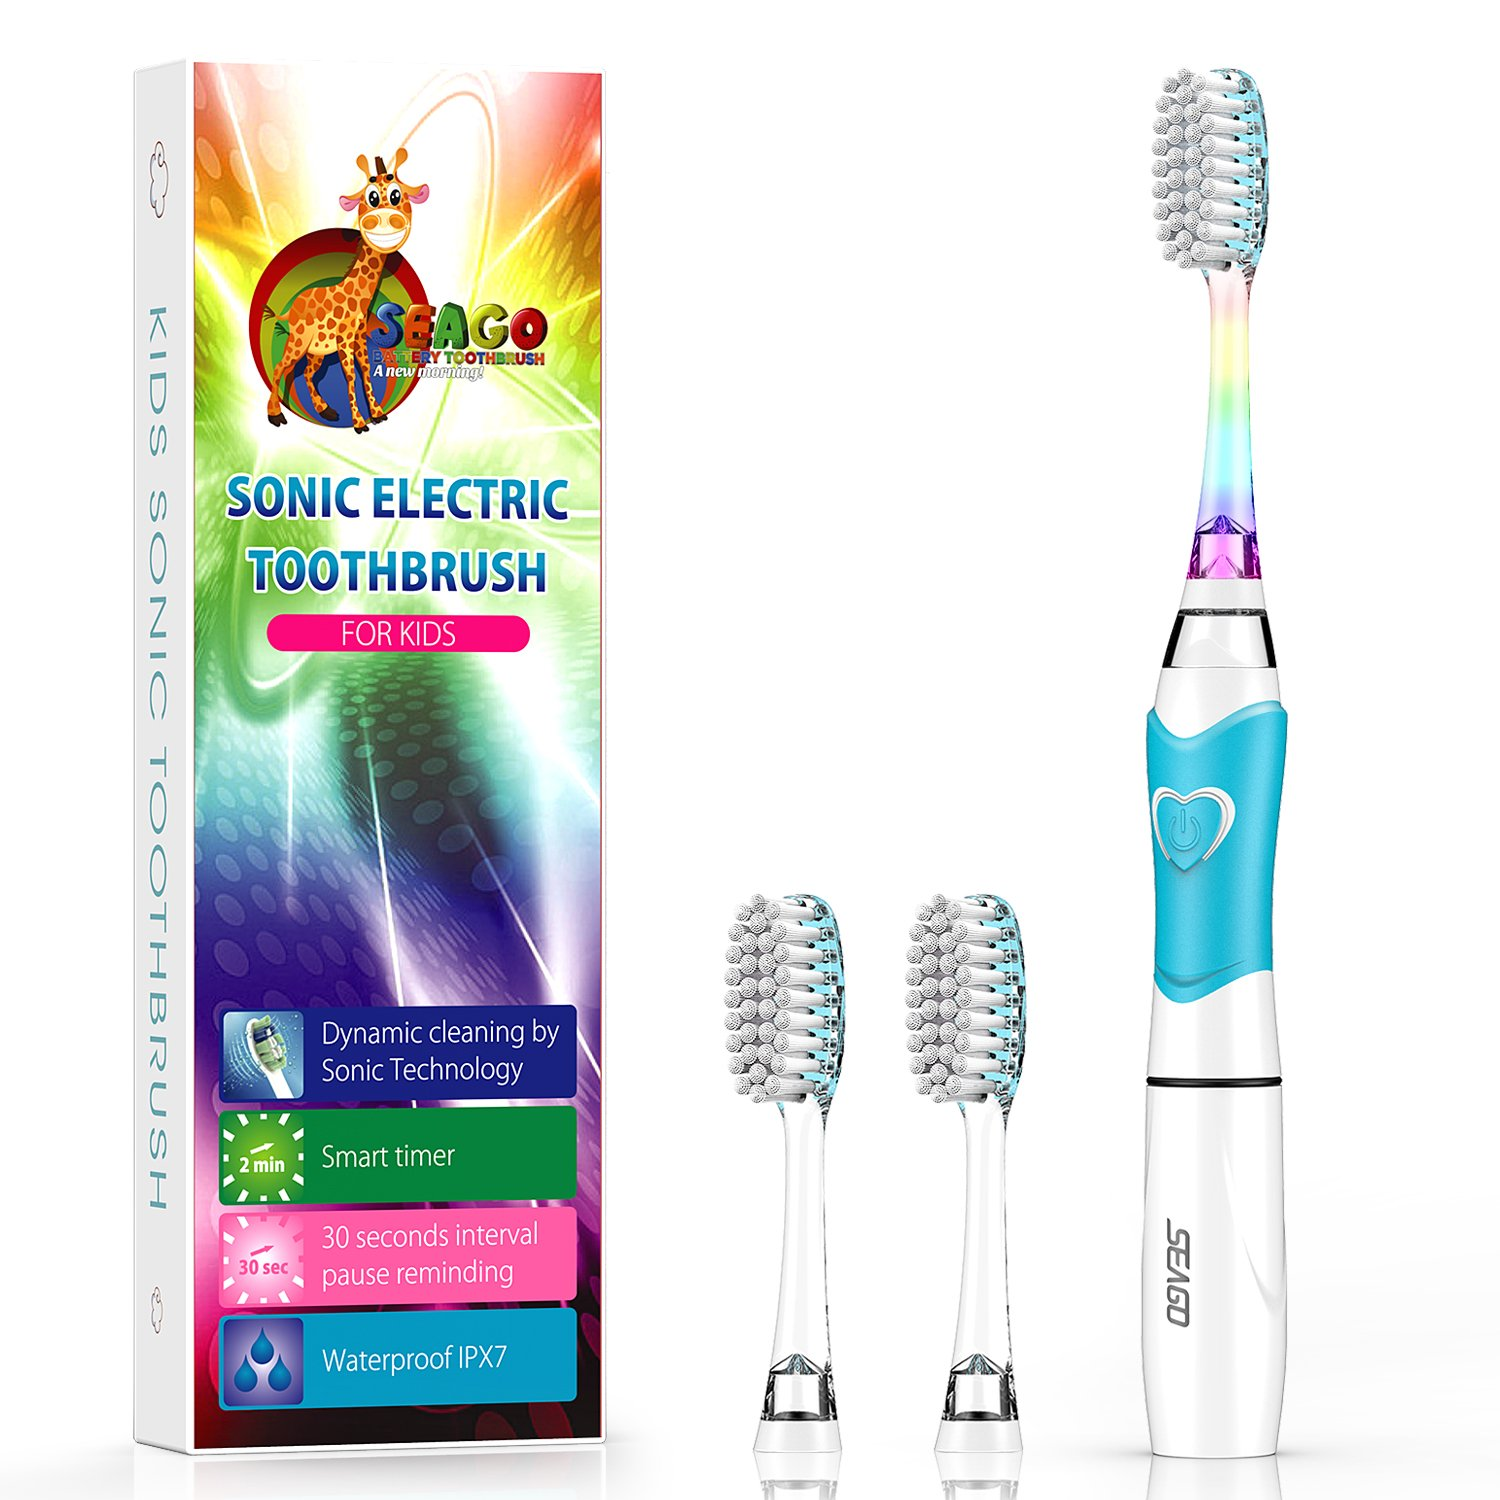 Kids Electric Toothbrush, Soft Battery Tooth Brush with Timer Powered by Sonic Technology for Children Boys and Girls, waterproof for shower (Blue)